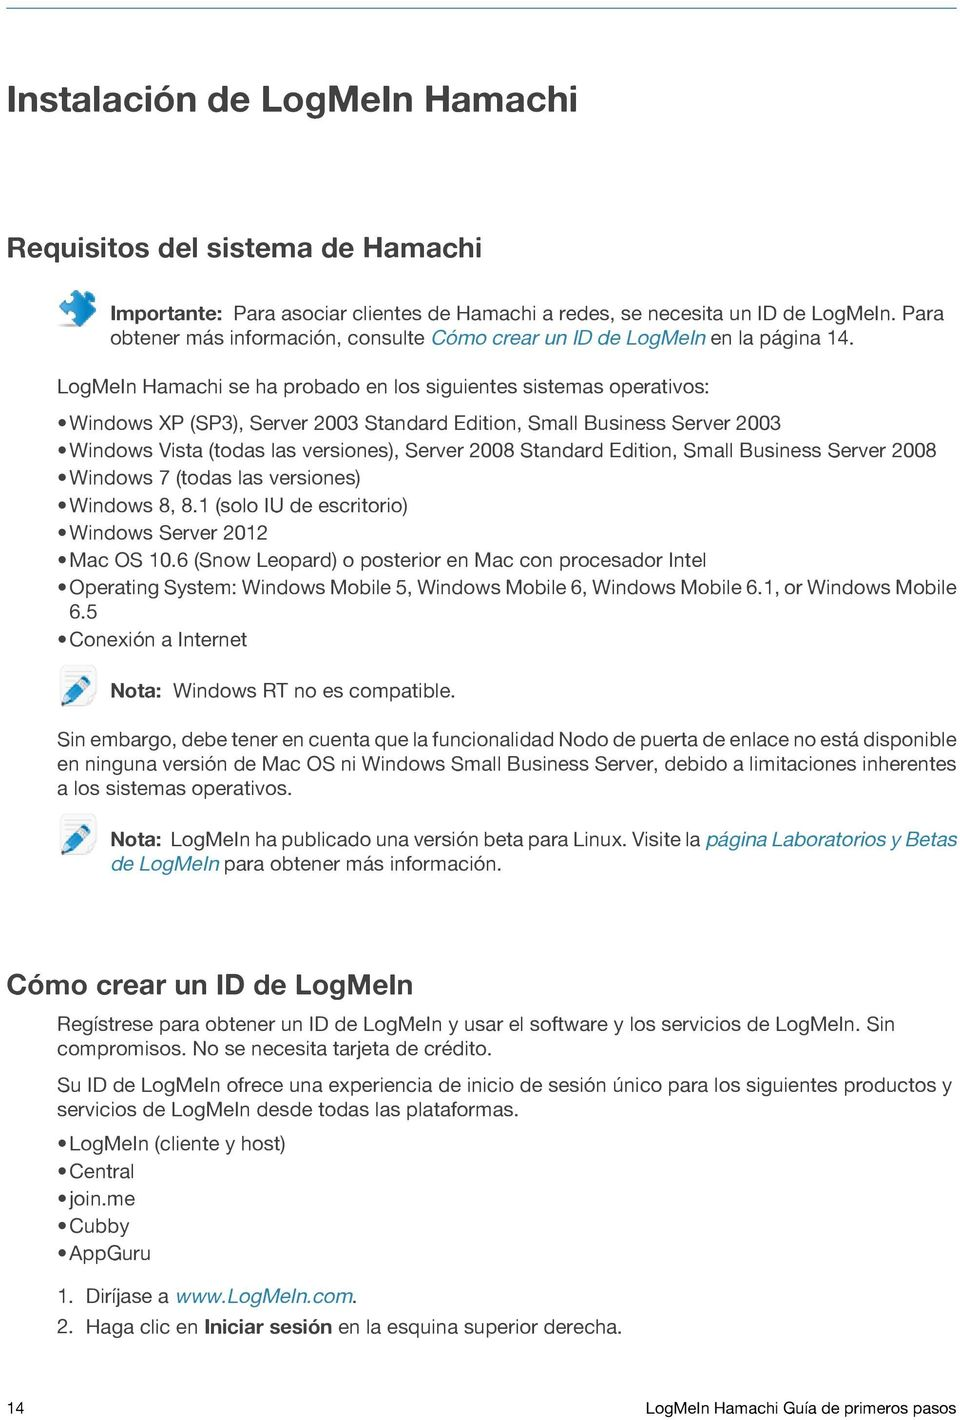 LogMeIn Hamachi se ha probado en los siguientes sistemas operativos: Windows XP (SP3), Server 2003 Standard Edition, Small Business Server 2003 Windows Vista (todas las versiones), Server 2008